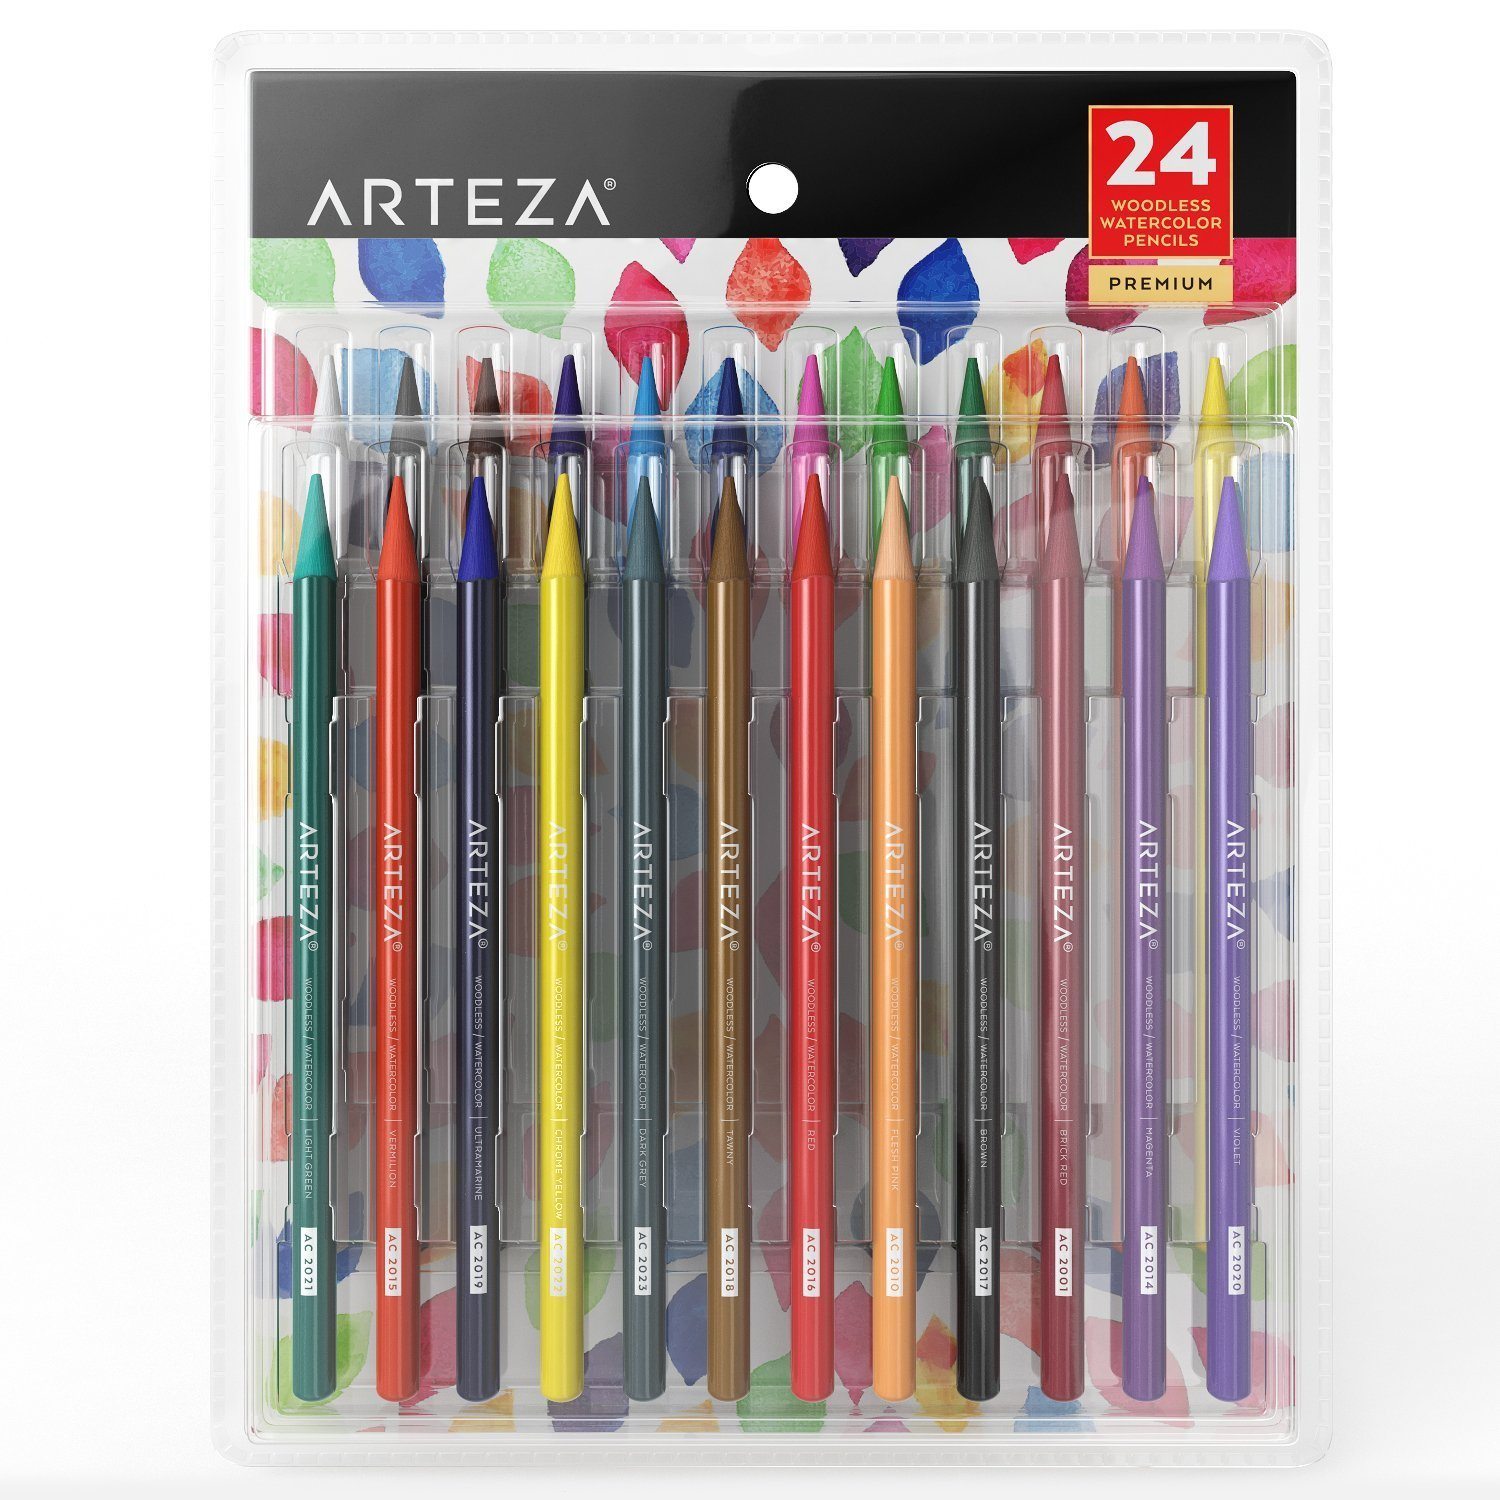 Arteza Woodless Watercolor Pencils (Set of 24) ARTZ-8061